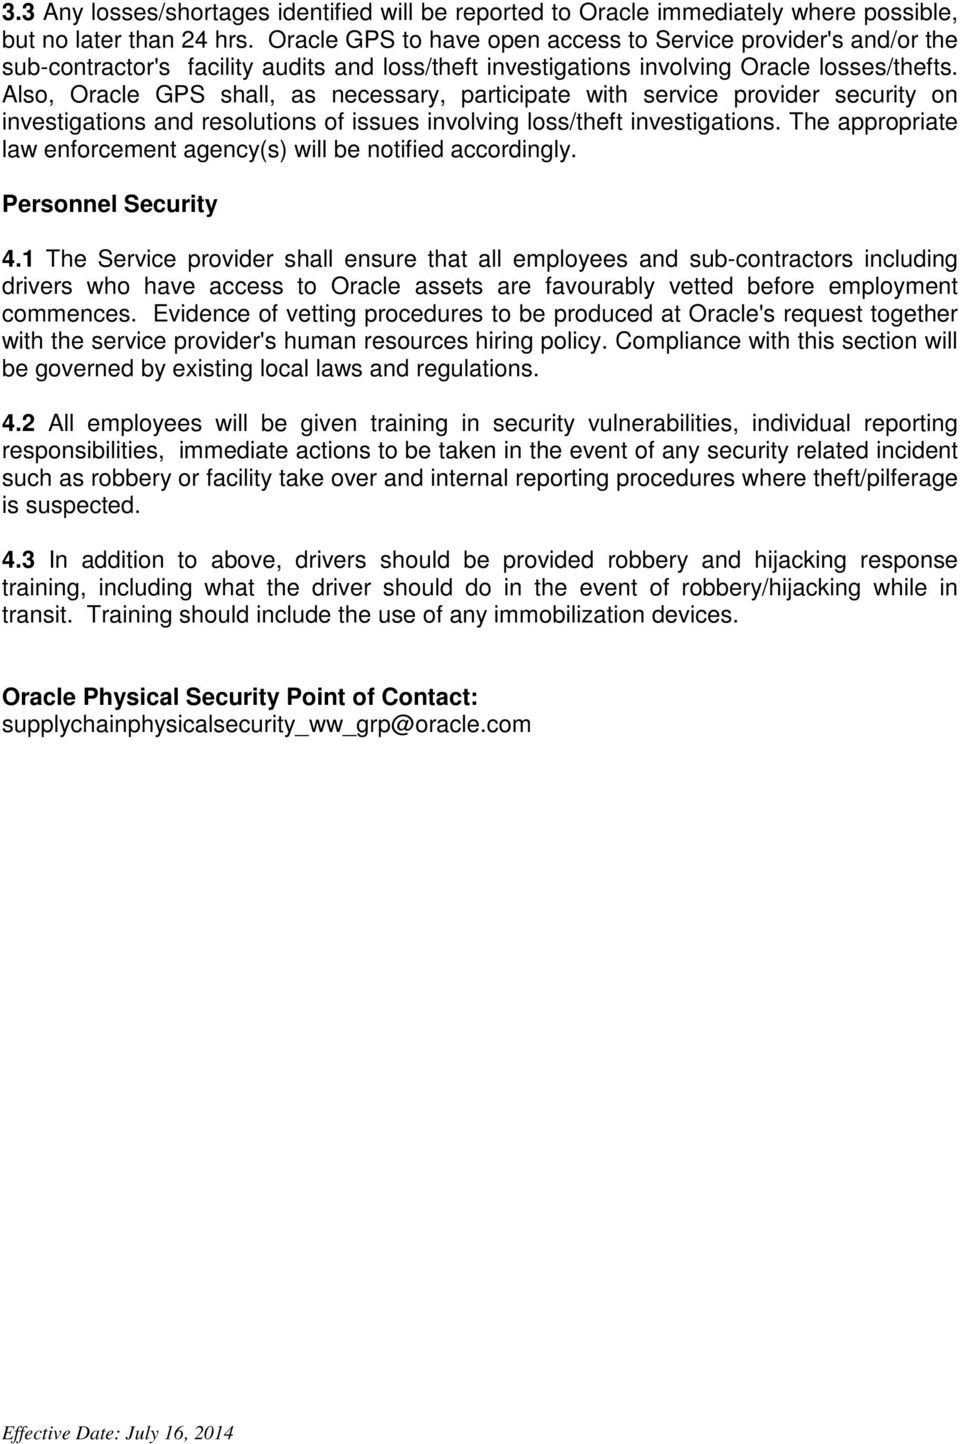 Also, Oracle GPS shall, as necessary, participate with service provider security on investigations and resolutions of issues involving loss/theft investigations.